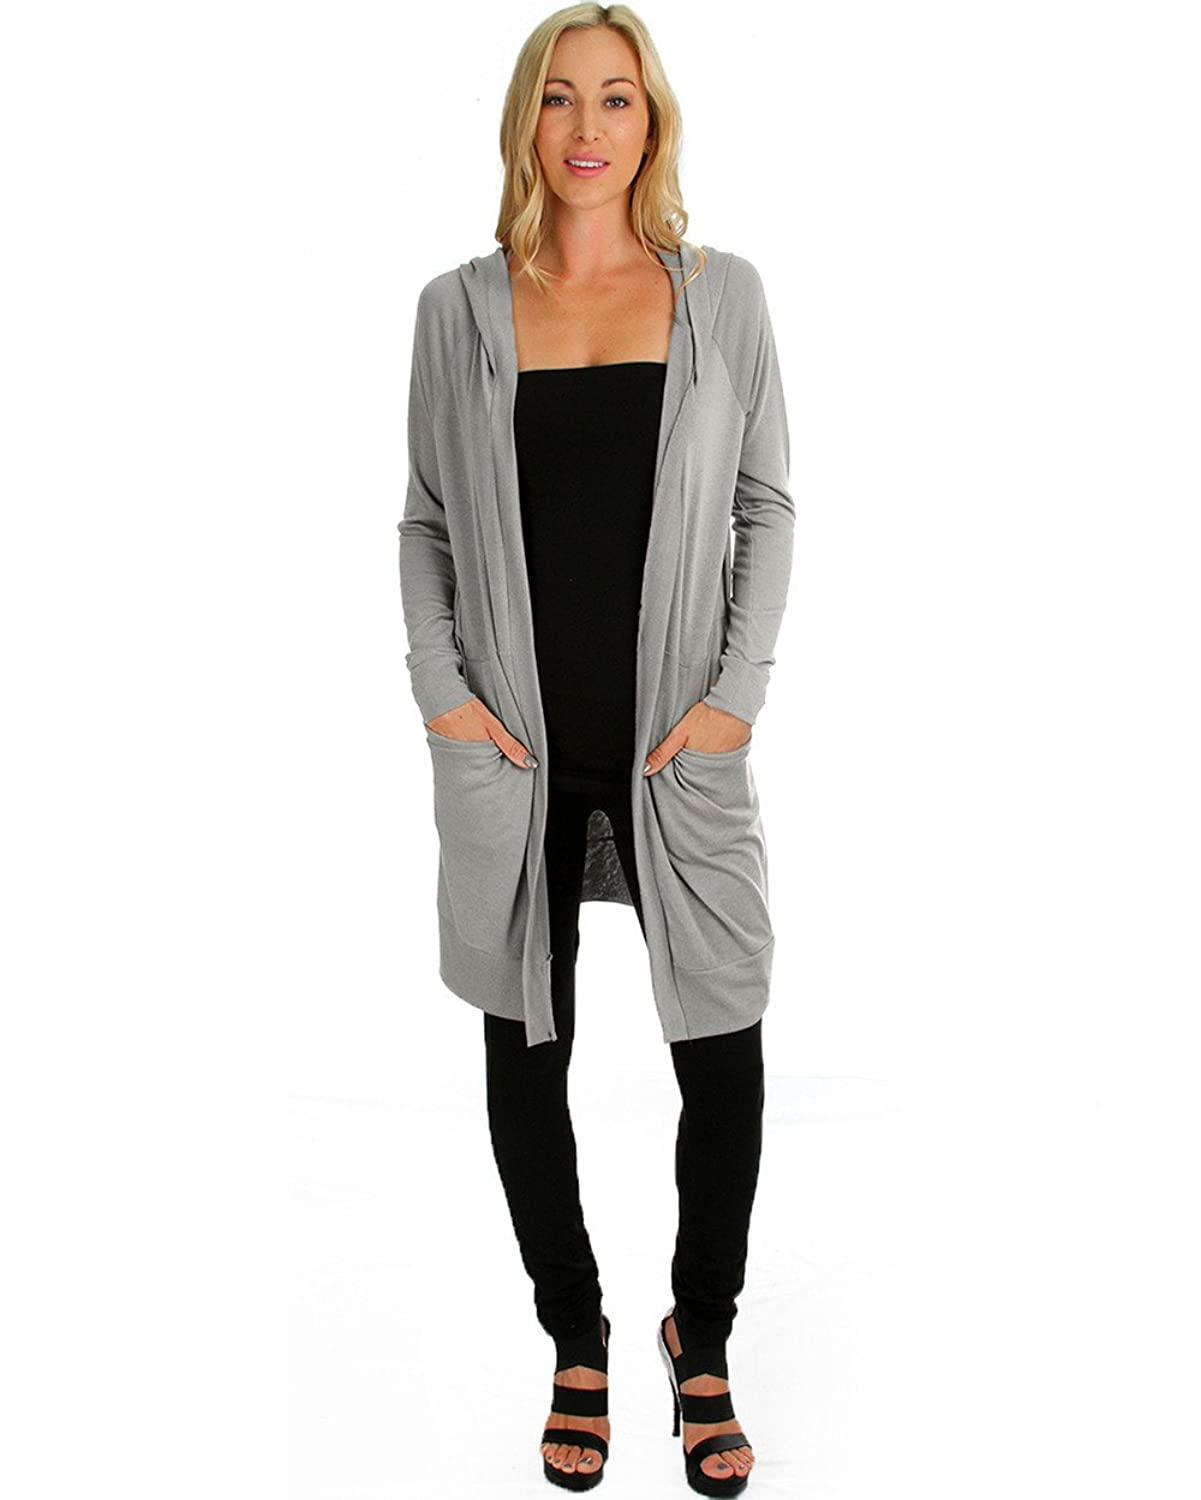 Amazon.com: Lyss Loo Women's Cover Me Up Long-line Hooded Cardigan ...